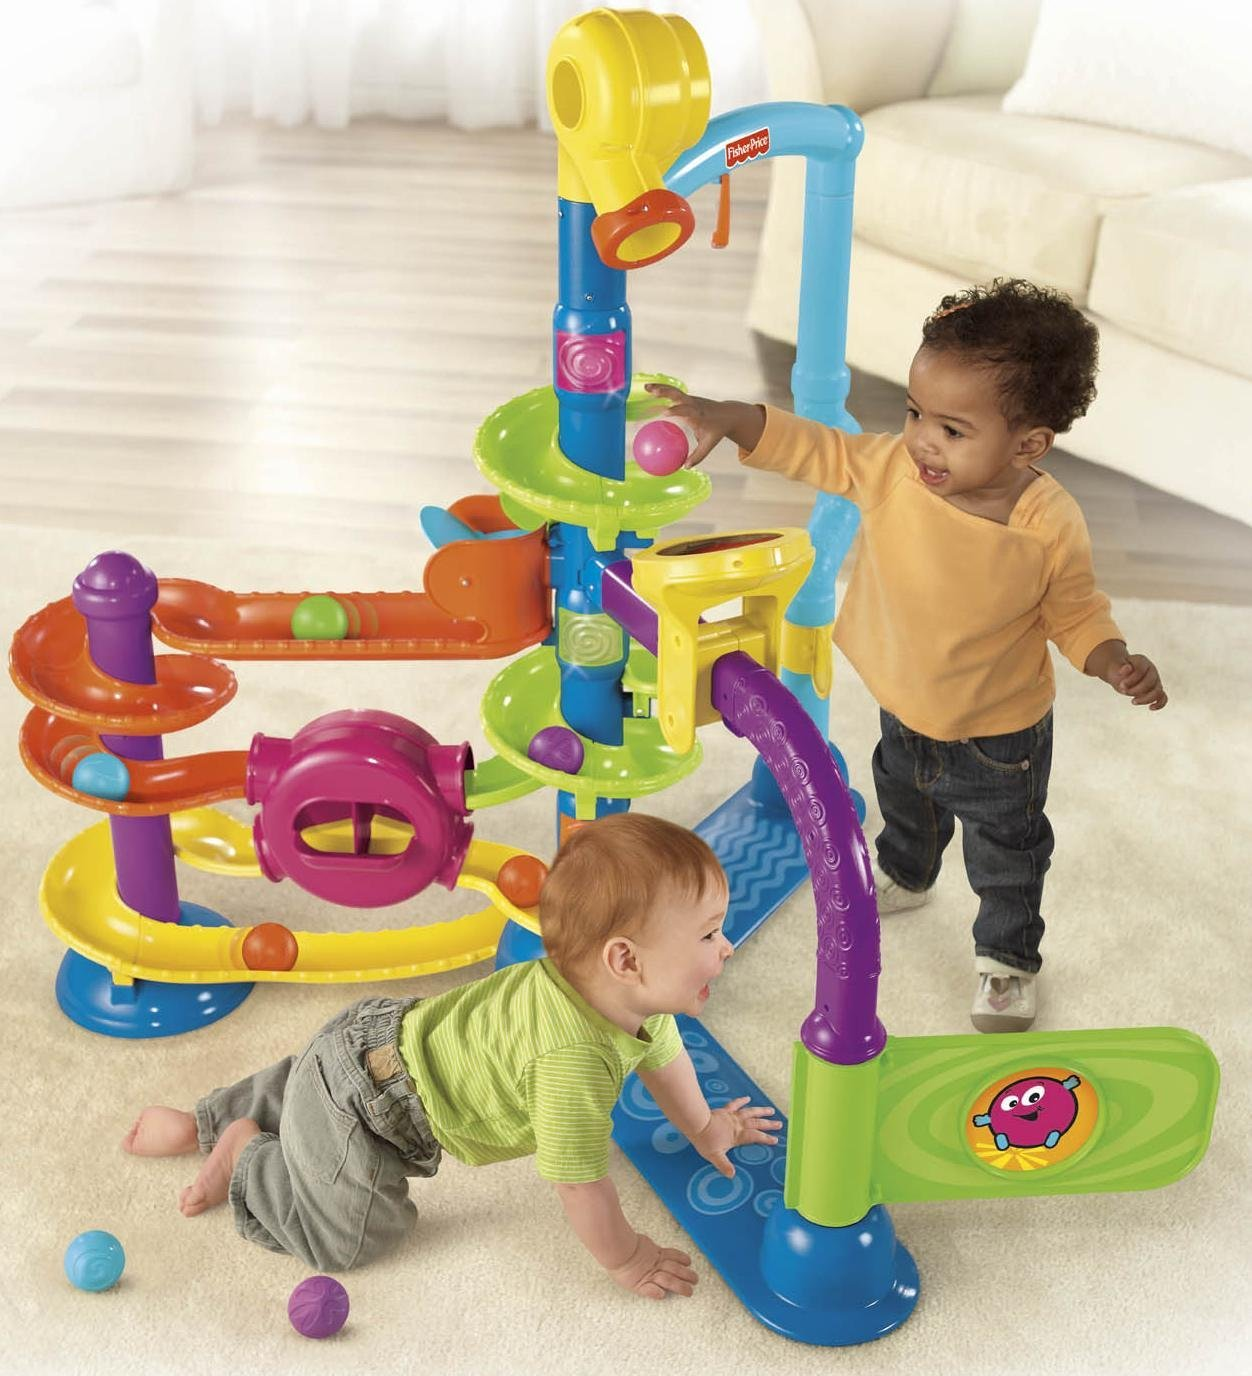 Toys For Toddlers One To Three Years : Best gifts ideas for one year old boys first christmas